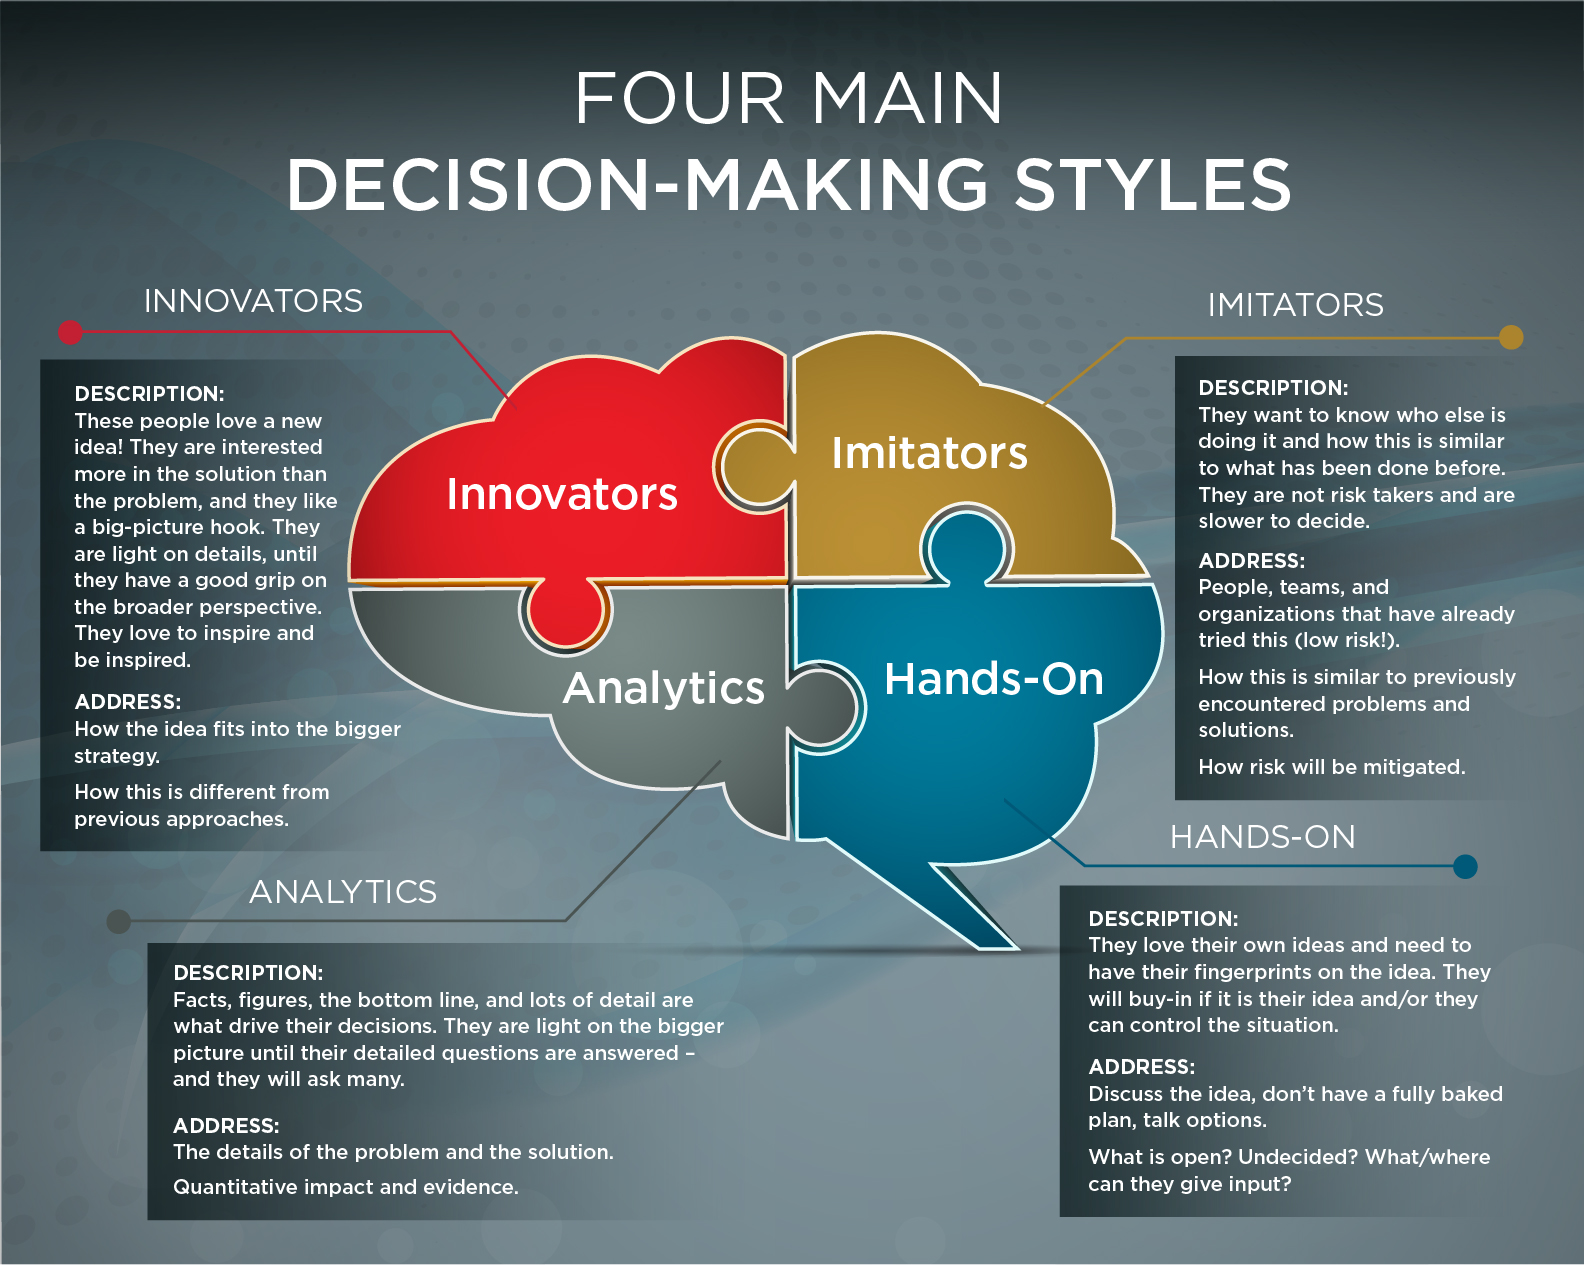 Four Main Decision-Making Styles: Innovators, Imitators, Analytics, and Hands On